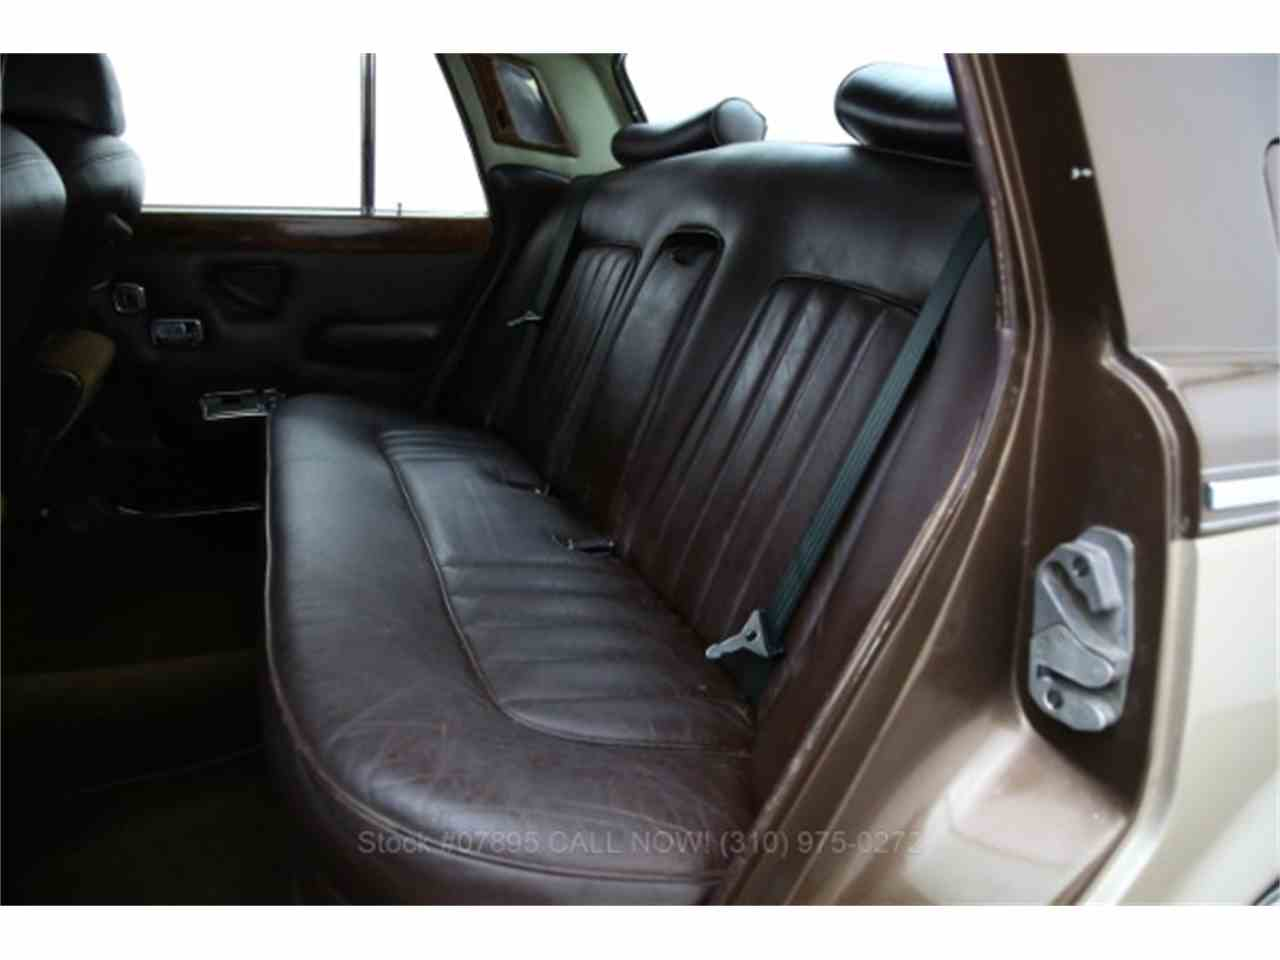 Large Picture of '79 Rolls-Royce Silver Shadow located in California - $9,750.00 - M4TX